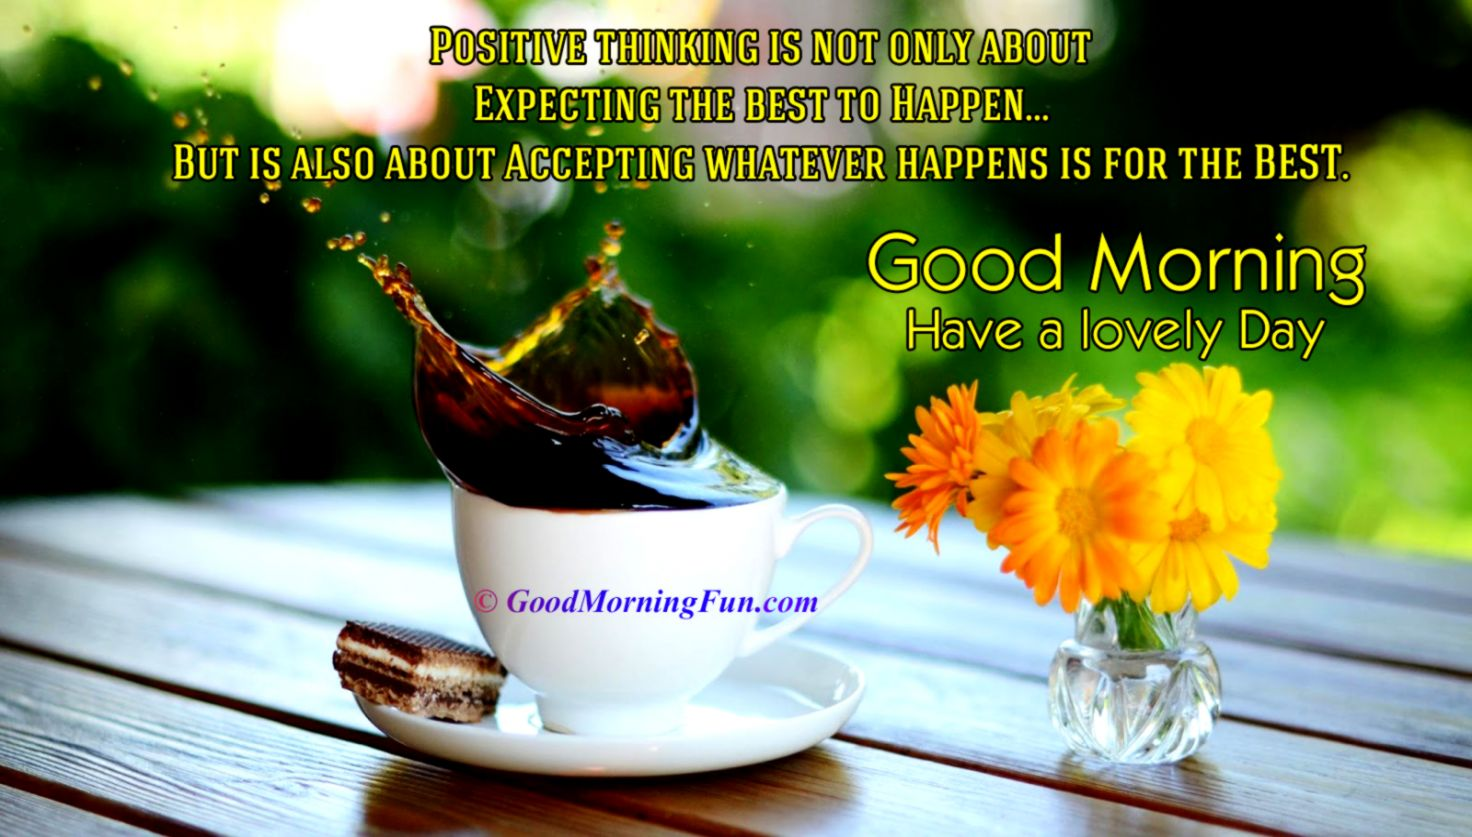 Good Morning Quote Wallpaper Inspiration Wallpapers